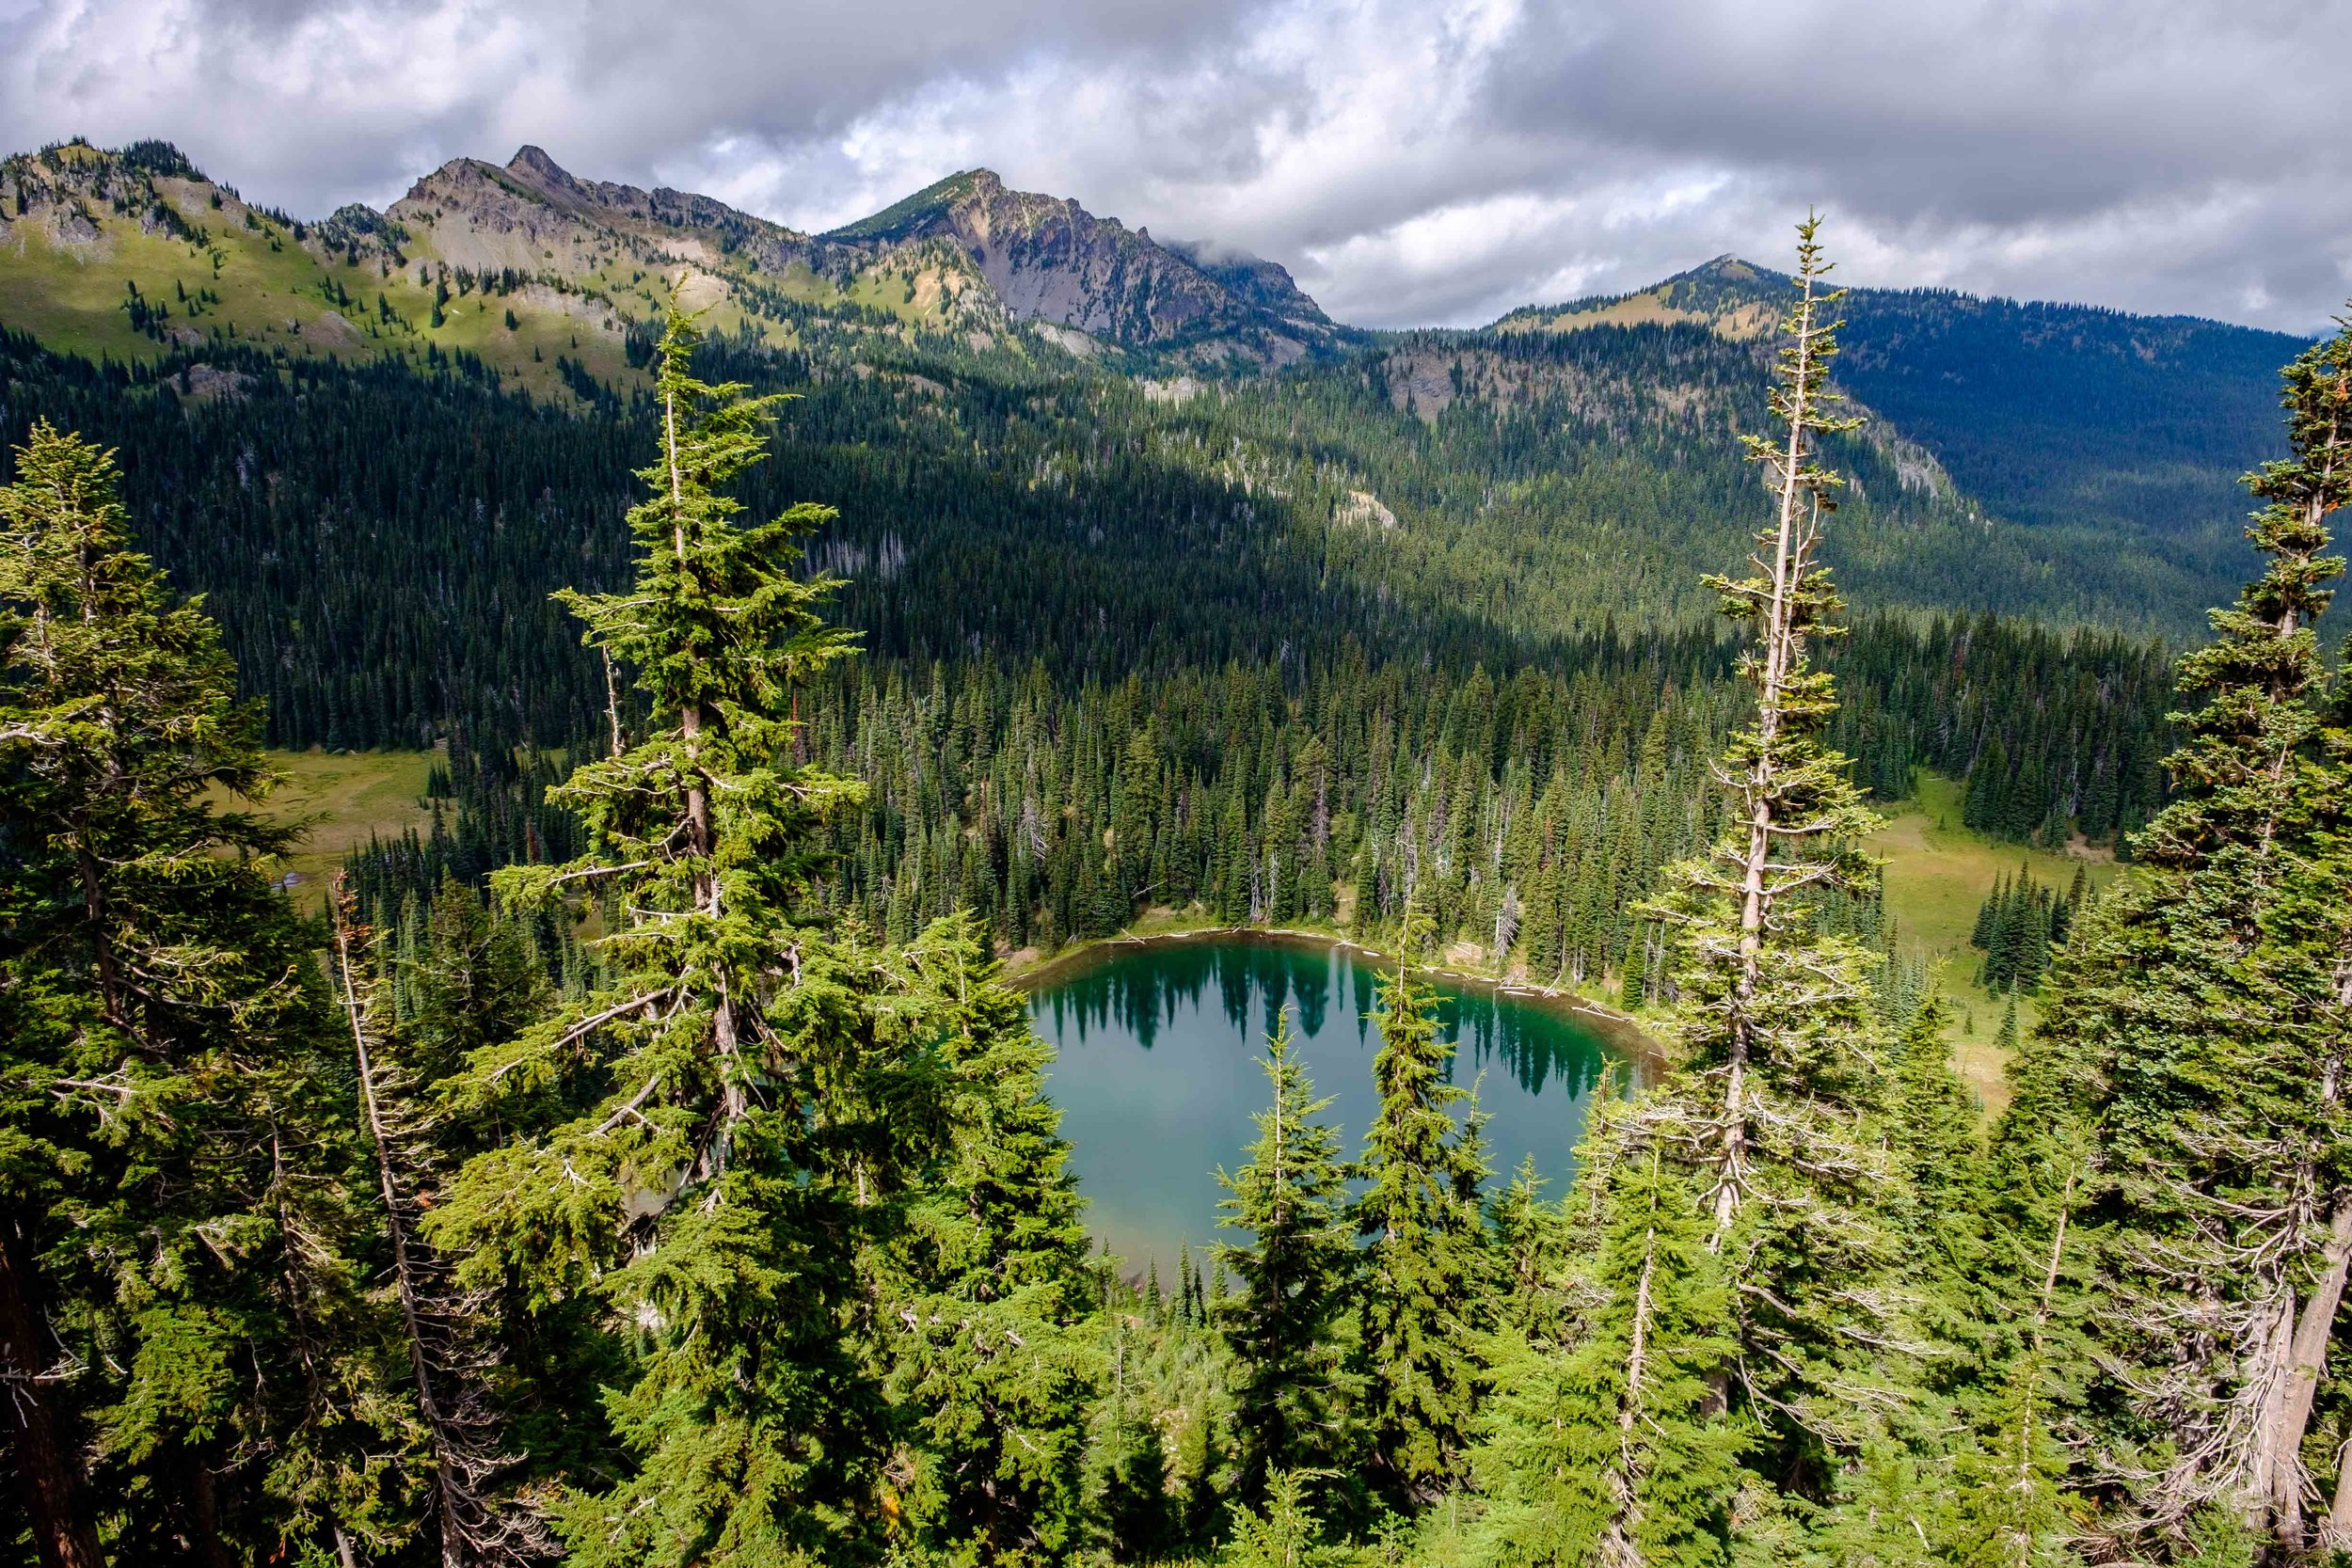 Finding hiking bliss in the subalpine section of Sunrise, the highest elevation area in the park reachable by car.